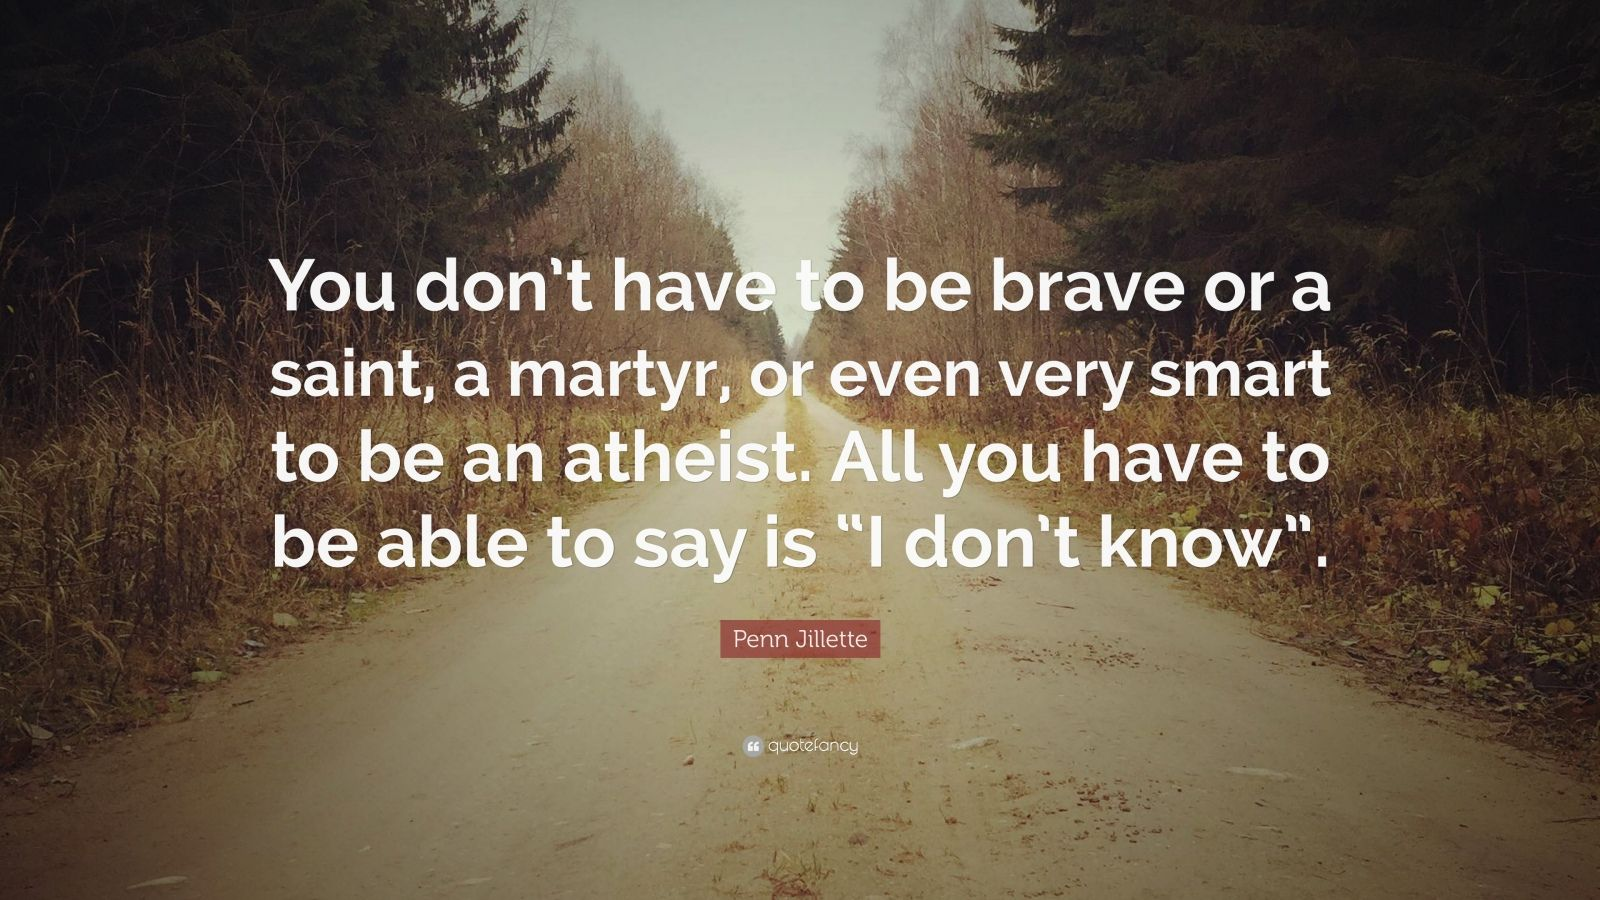 """Penn Jillette Quote: """"You don't have to be brave or a saint, a martyr, or even very smart to be an atheist. All you have to be able to say is """"I don't know""""."""""""